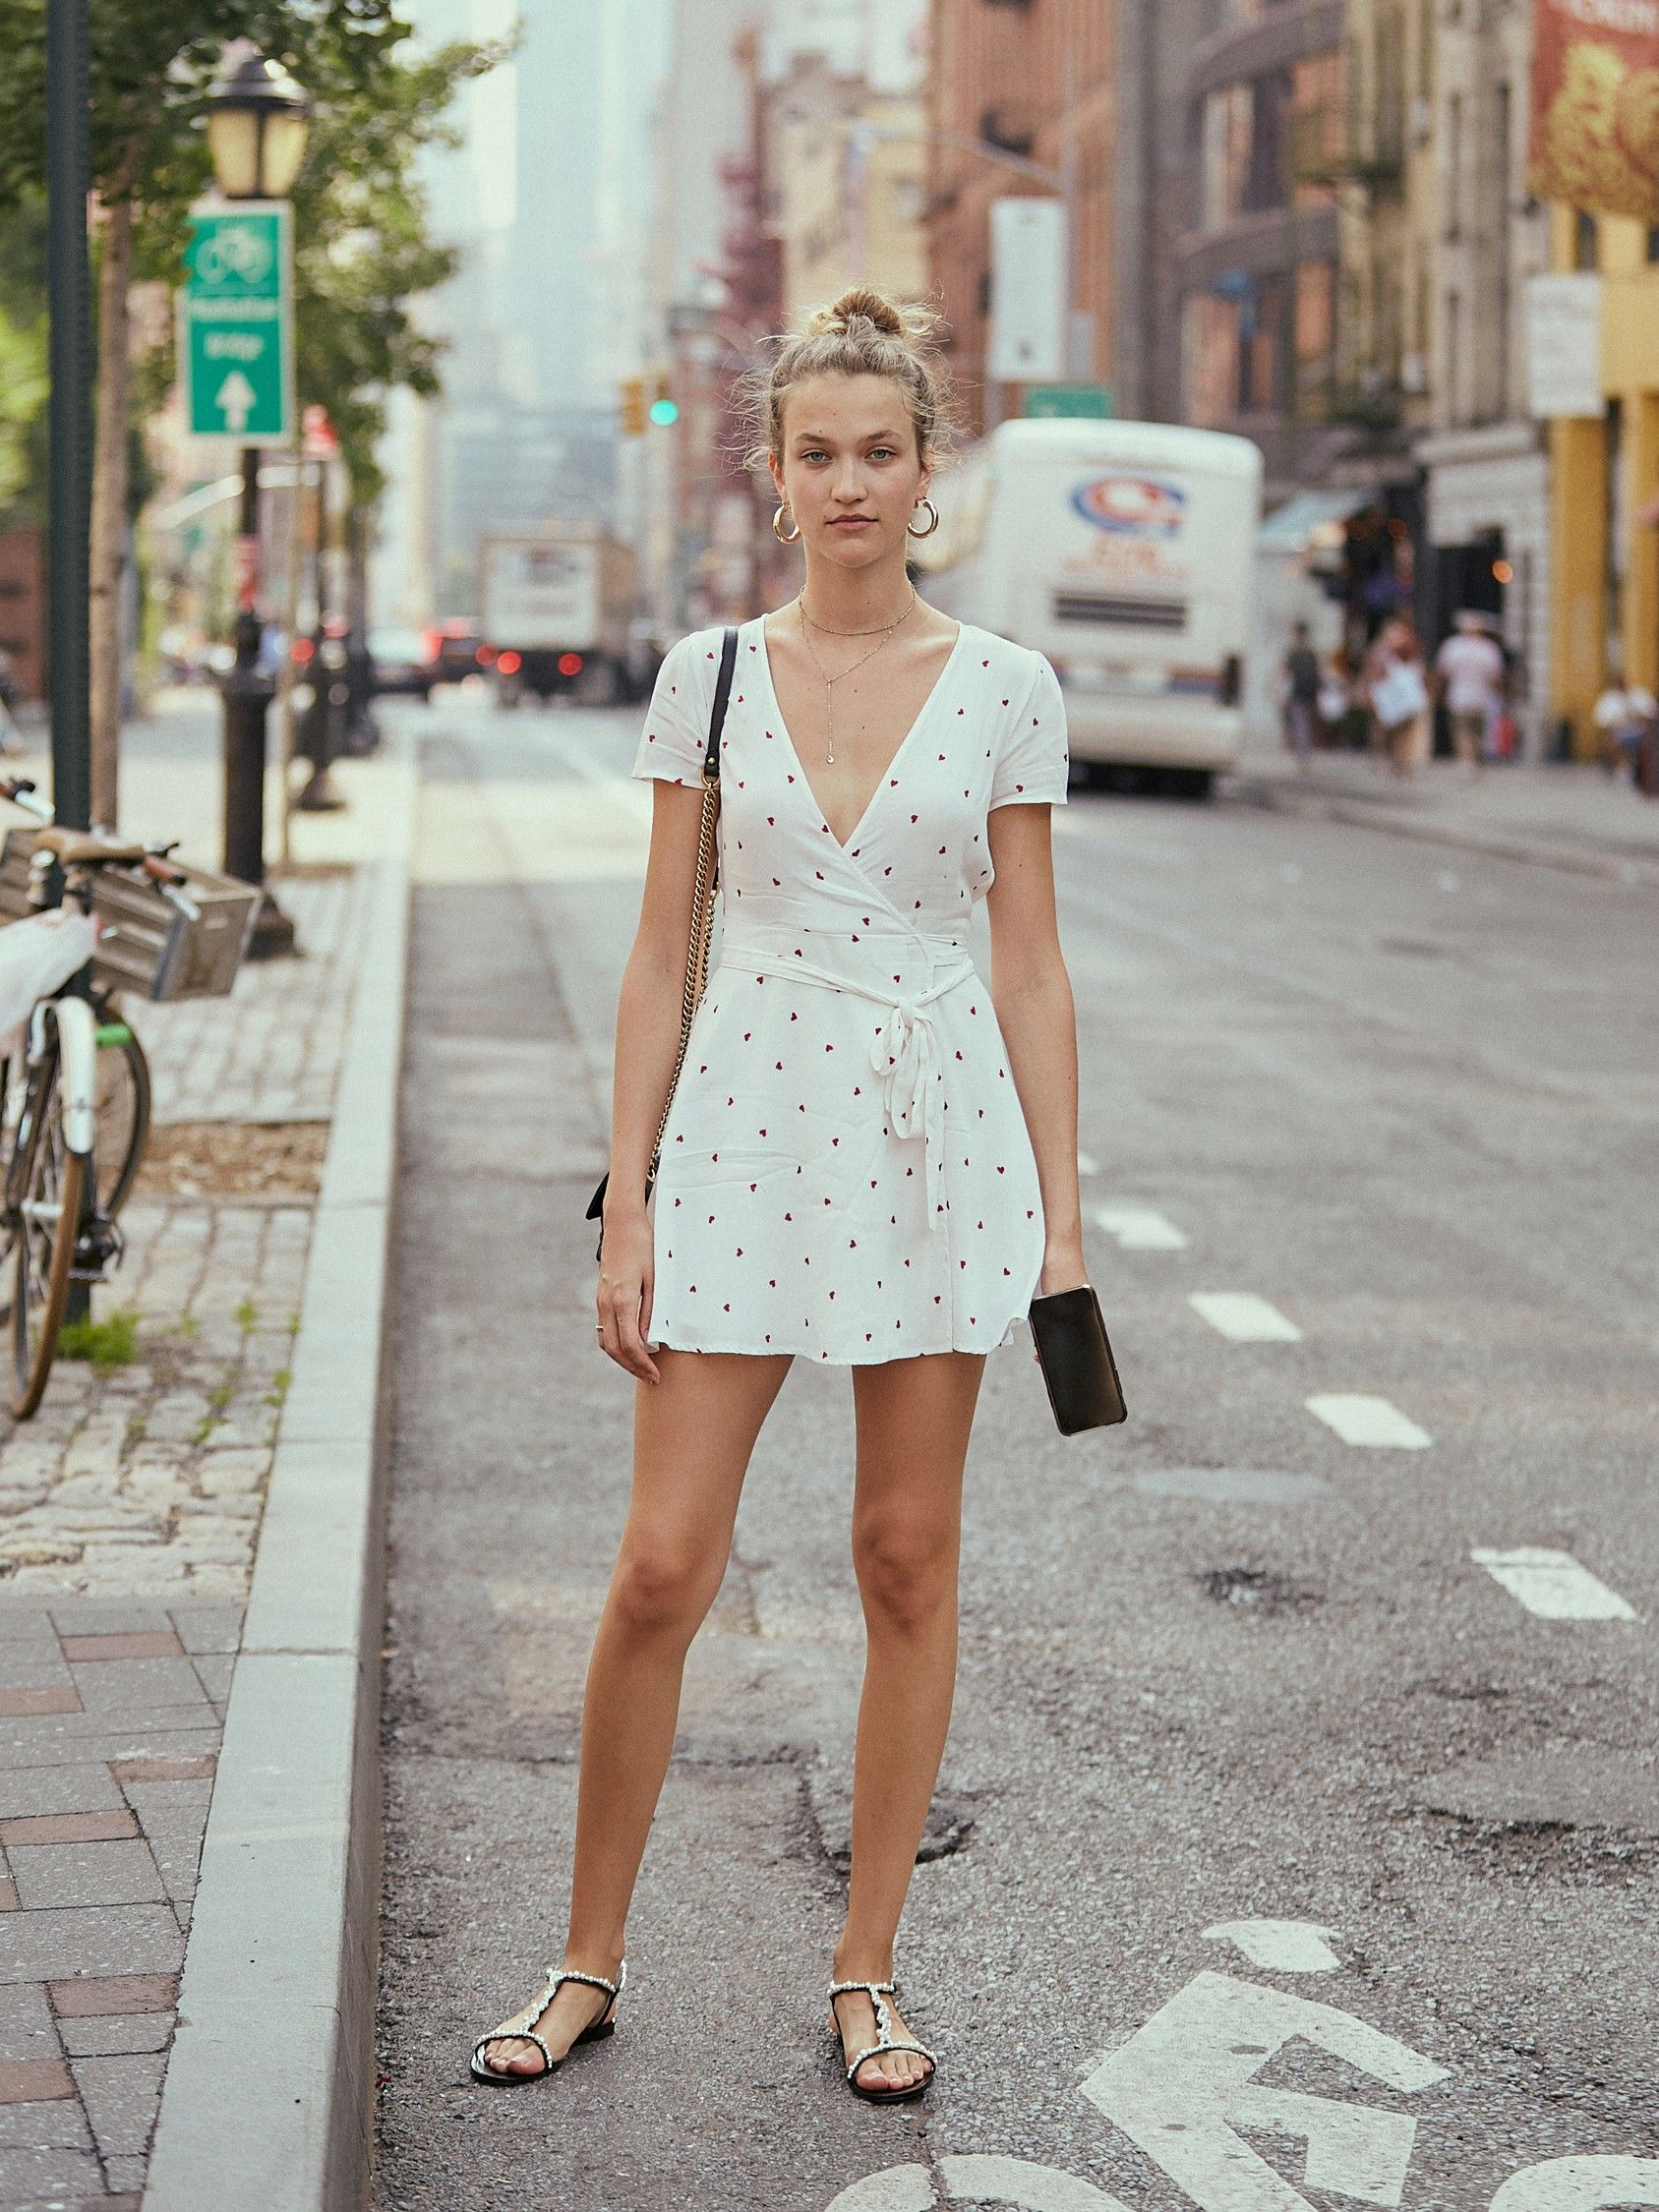 Wrap Dresses Sandals A Match Made In Heaven Summer Fashion For Teens Summer Fashion Outfits Classy Blouses [ 2250 x 1687 Pixel ]